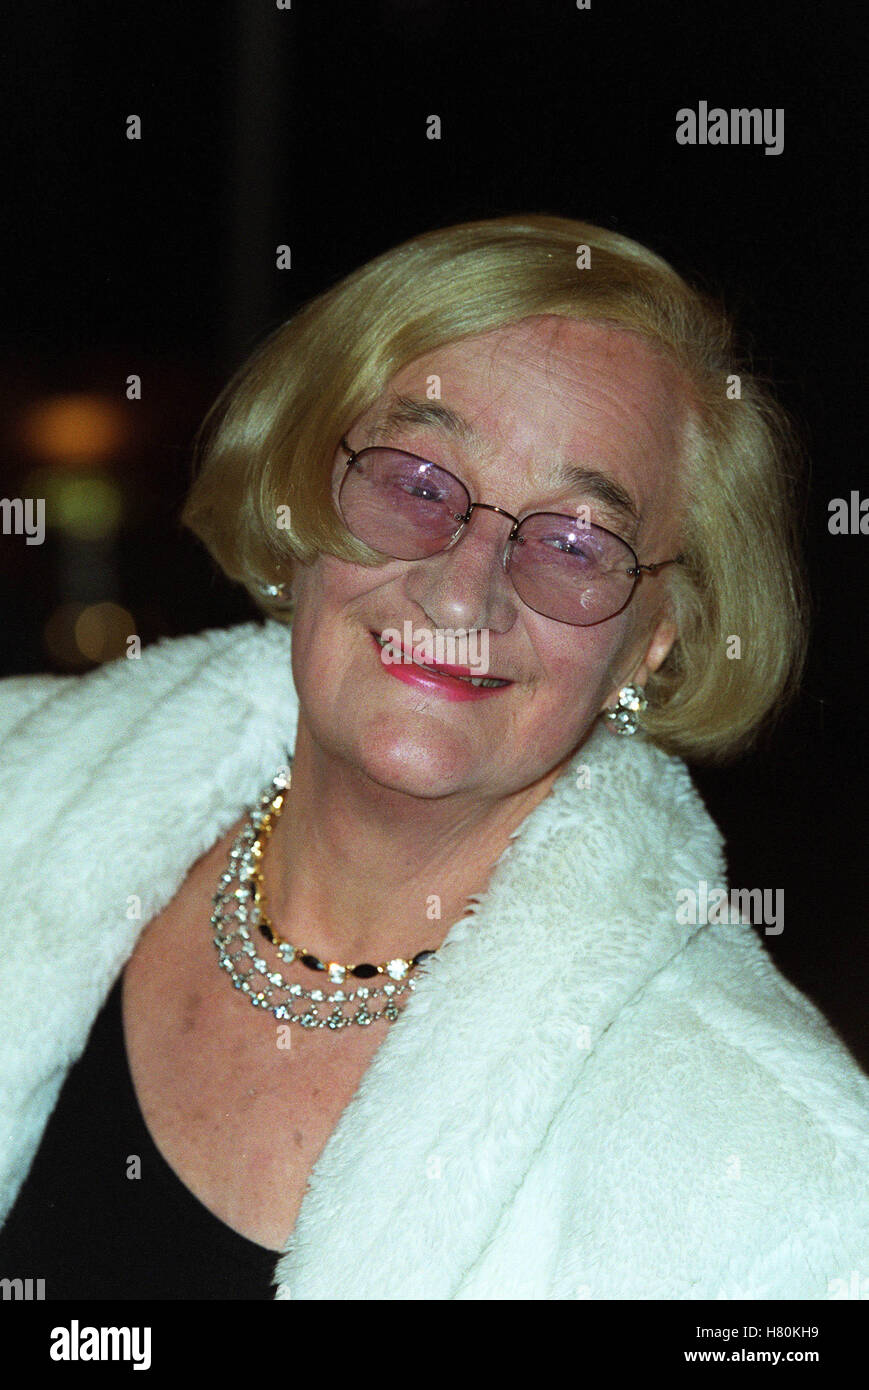 LIZ SMITH  18 December 1999 - Stock Image